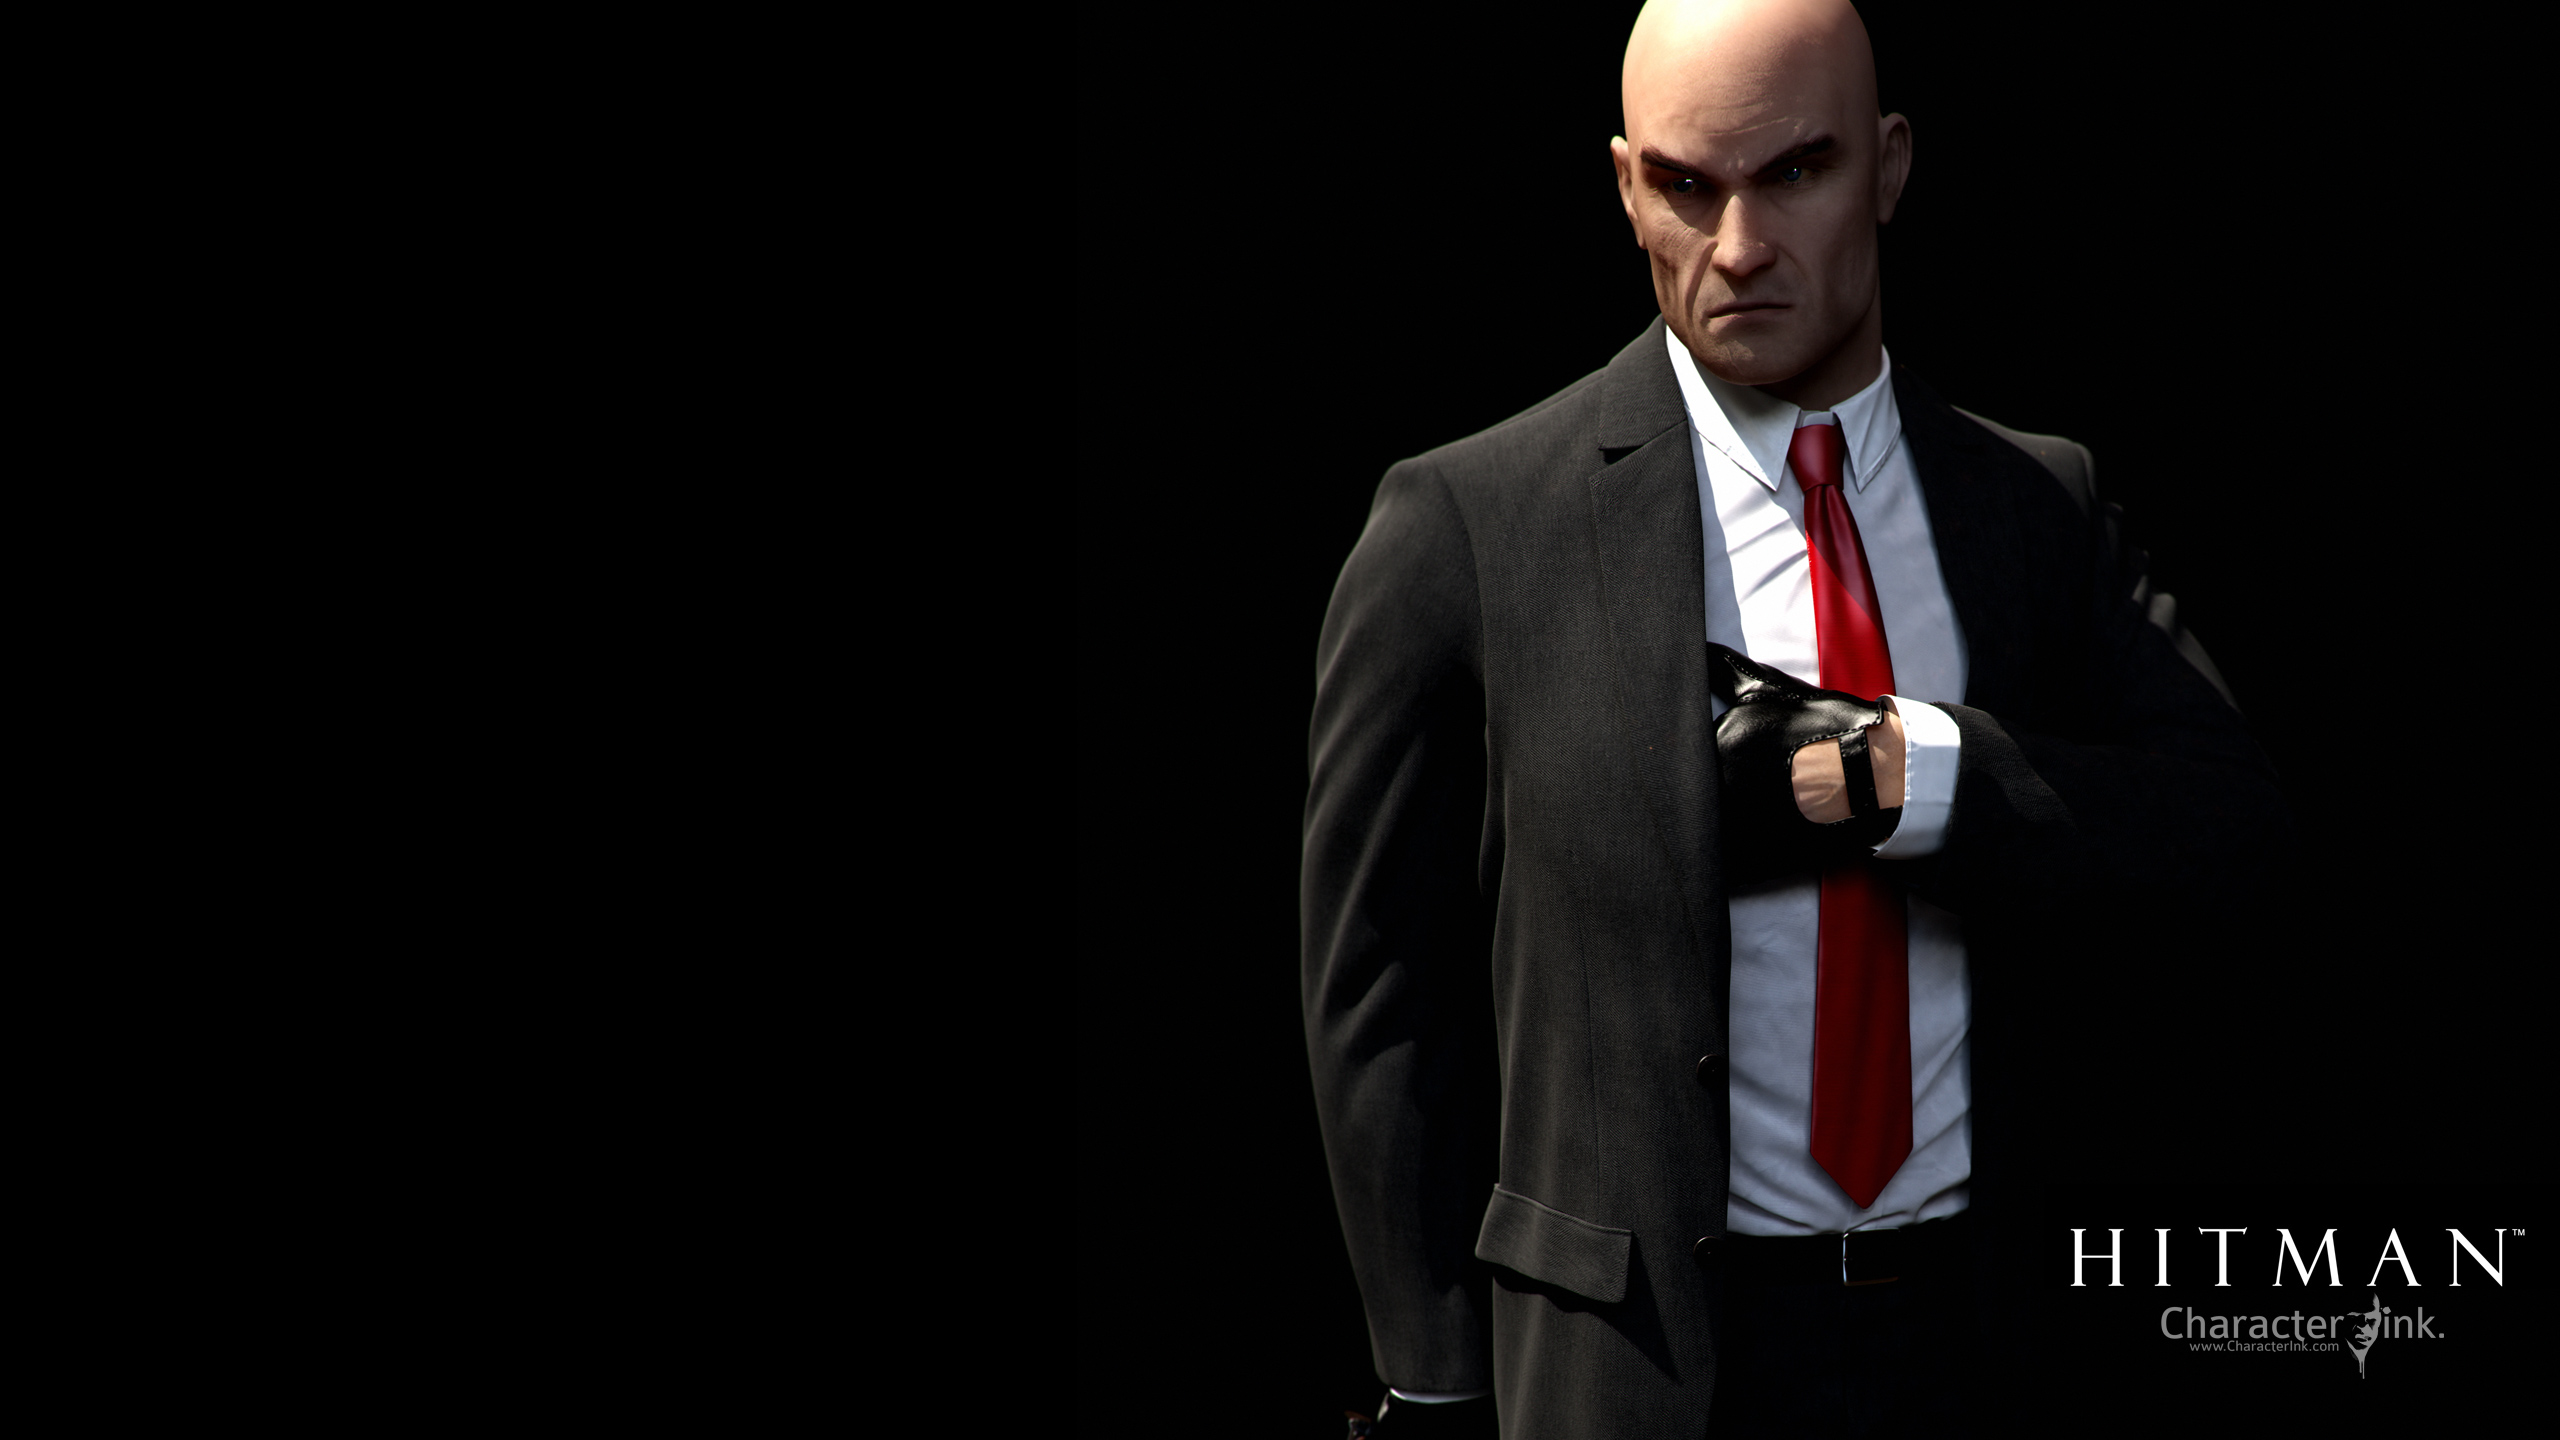 agent 47 hd wallpapers - photo #7